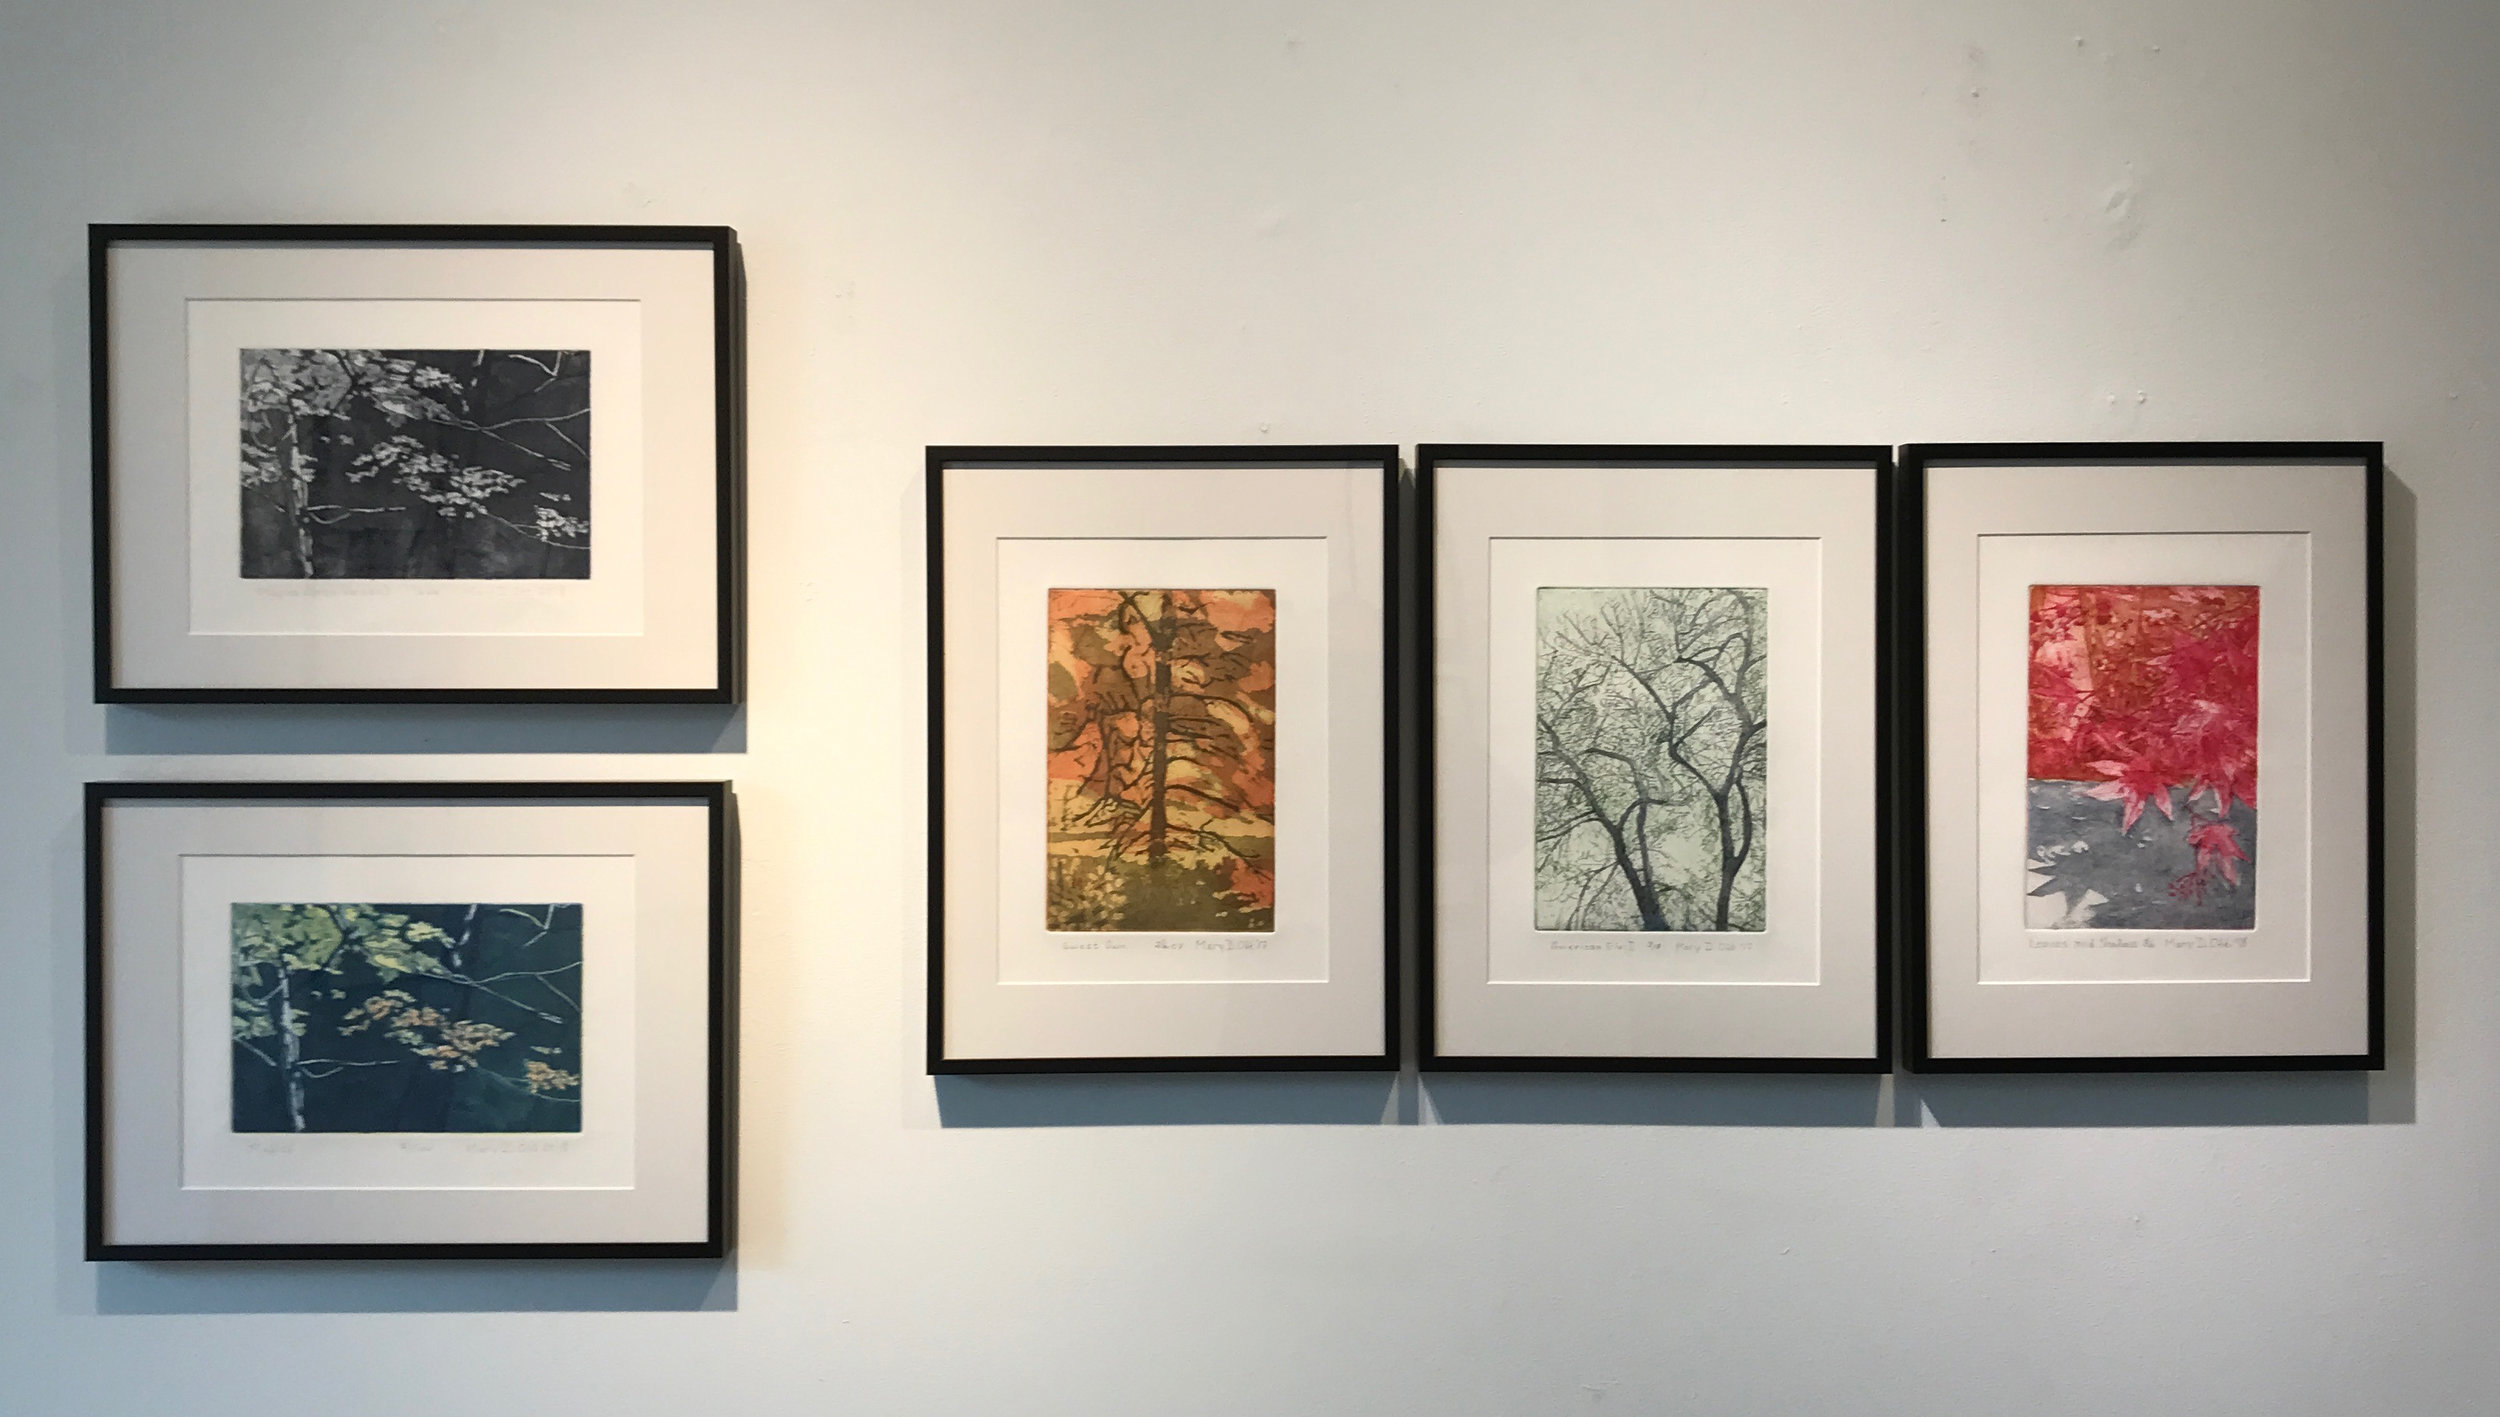 Images from  Branching Out , Original Prints by Mary D. Ott, May 2019, Touchstone Gallery